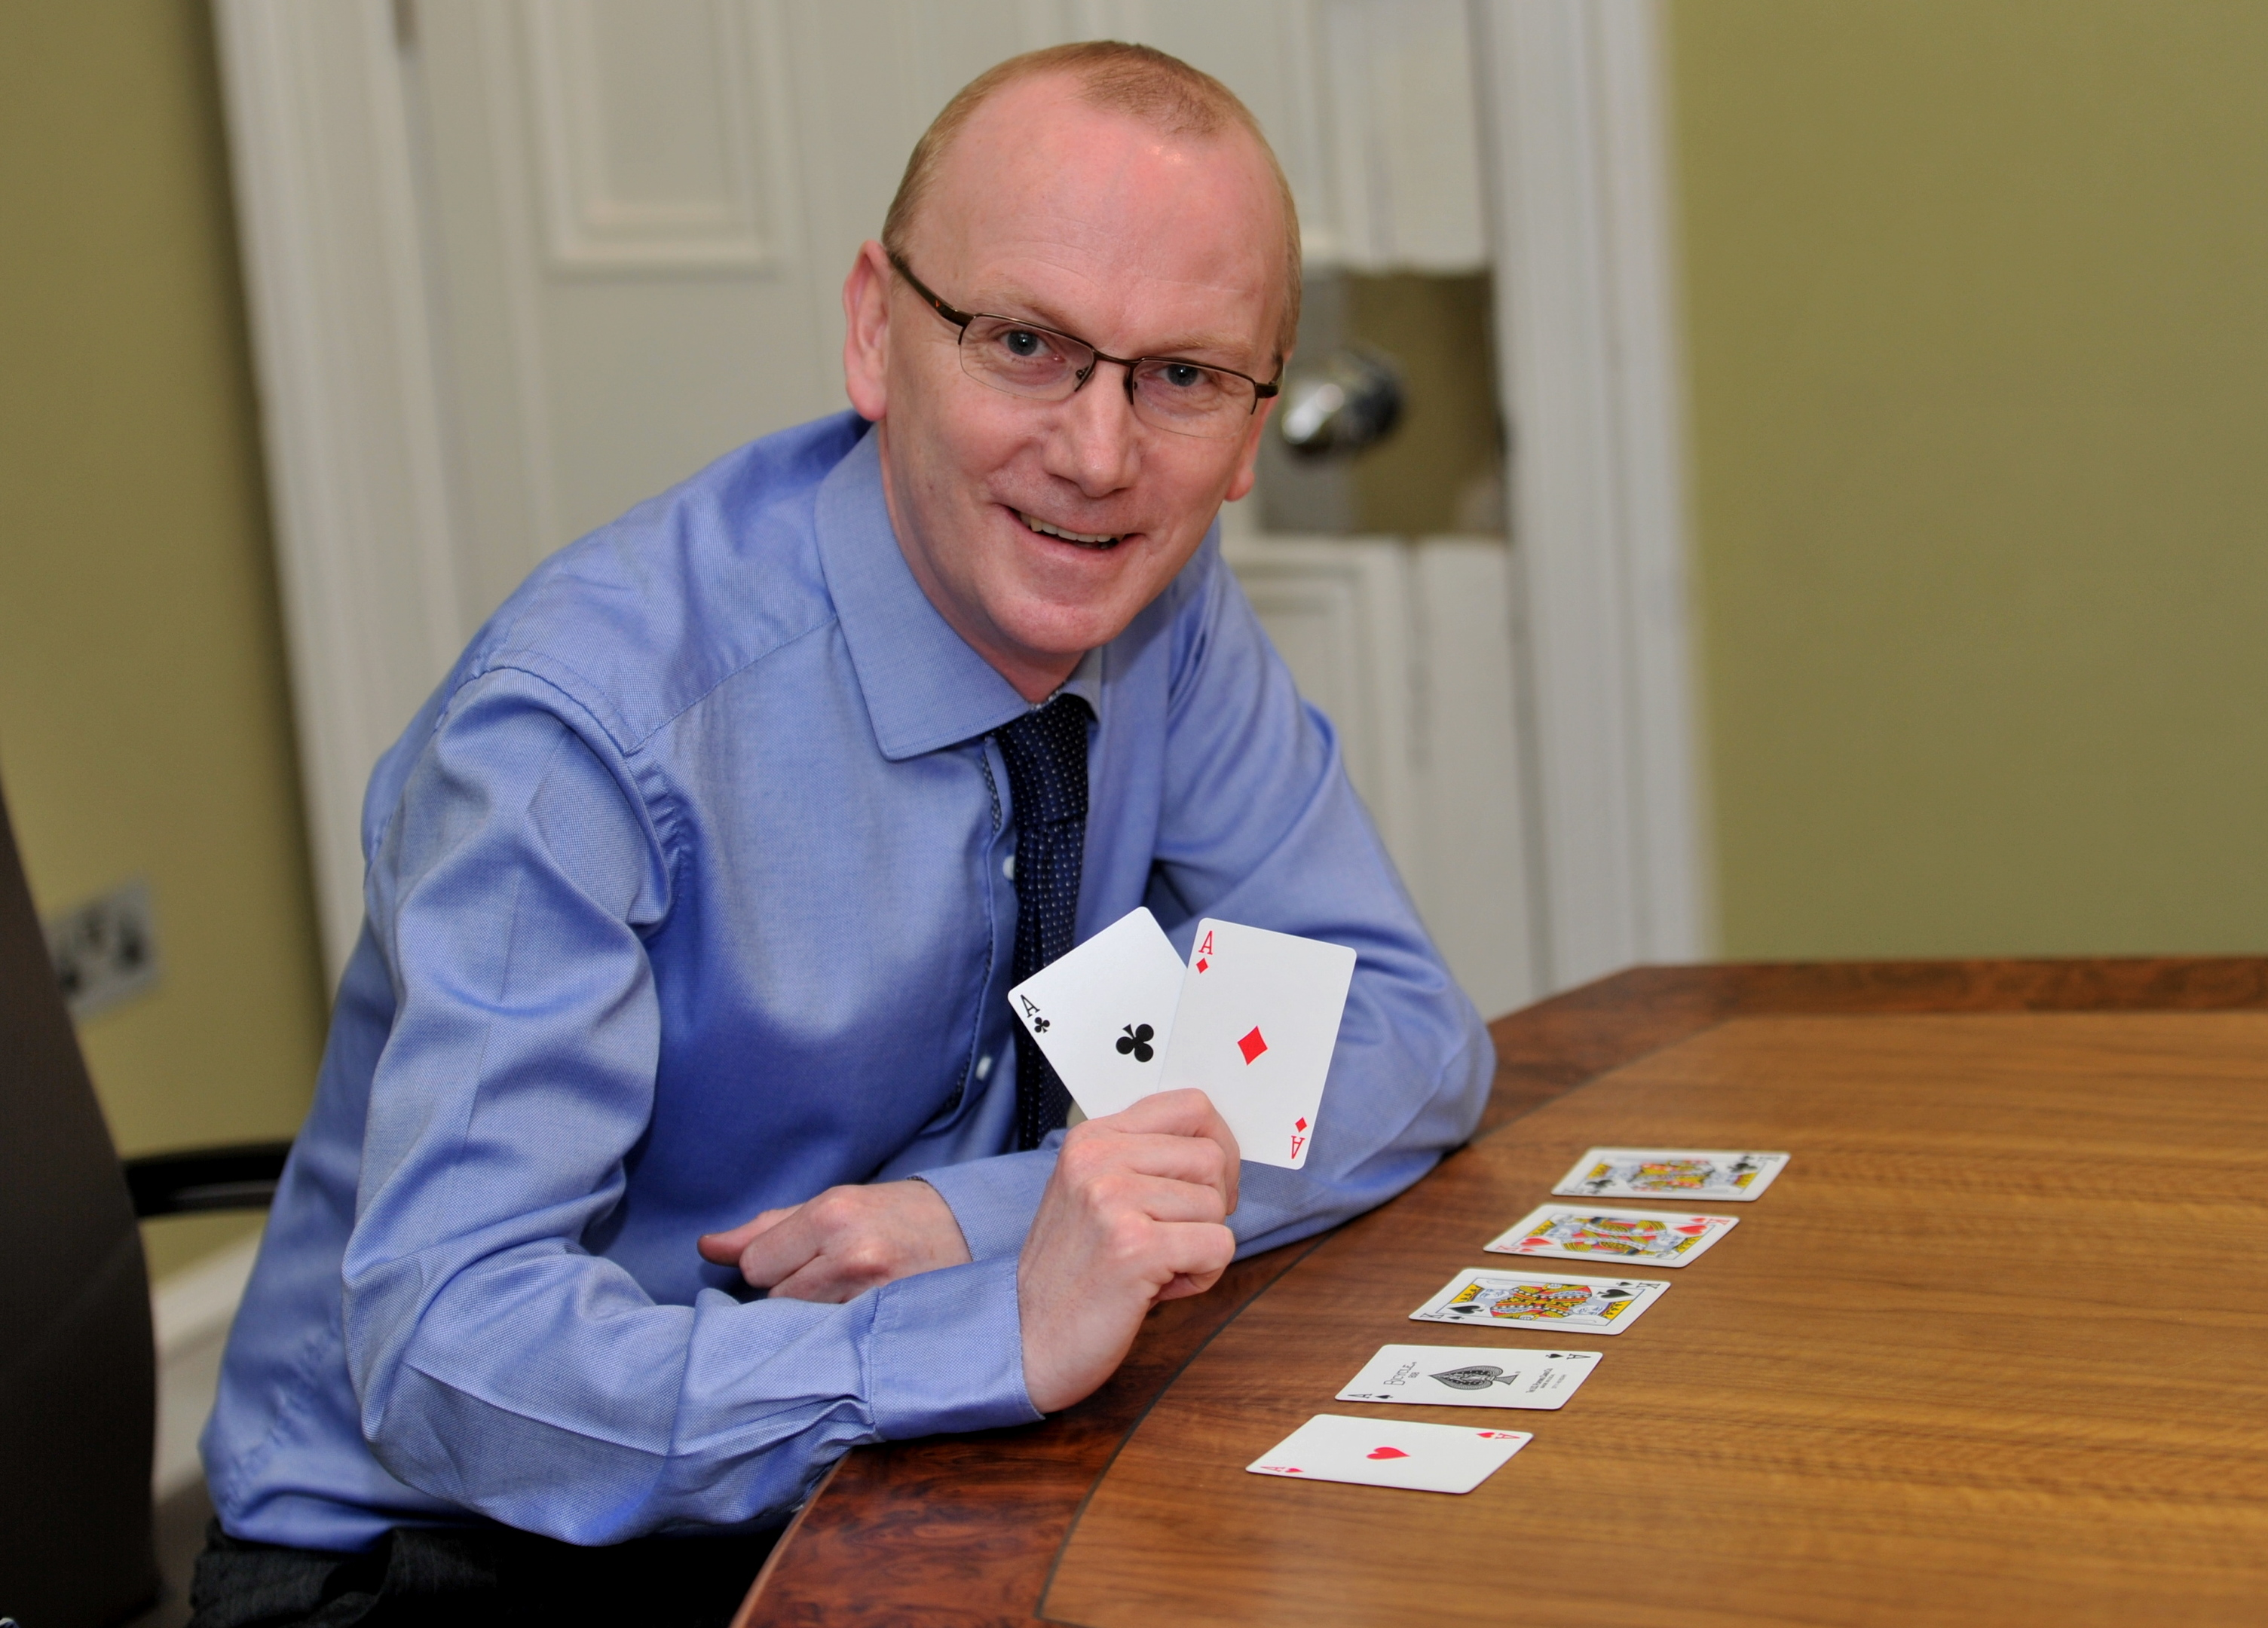 Gerry Forbes will head to Las Vegas next month for a poker tournament.